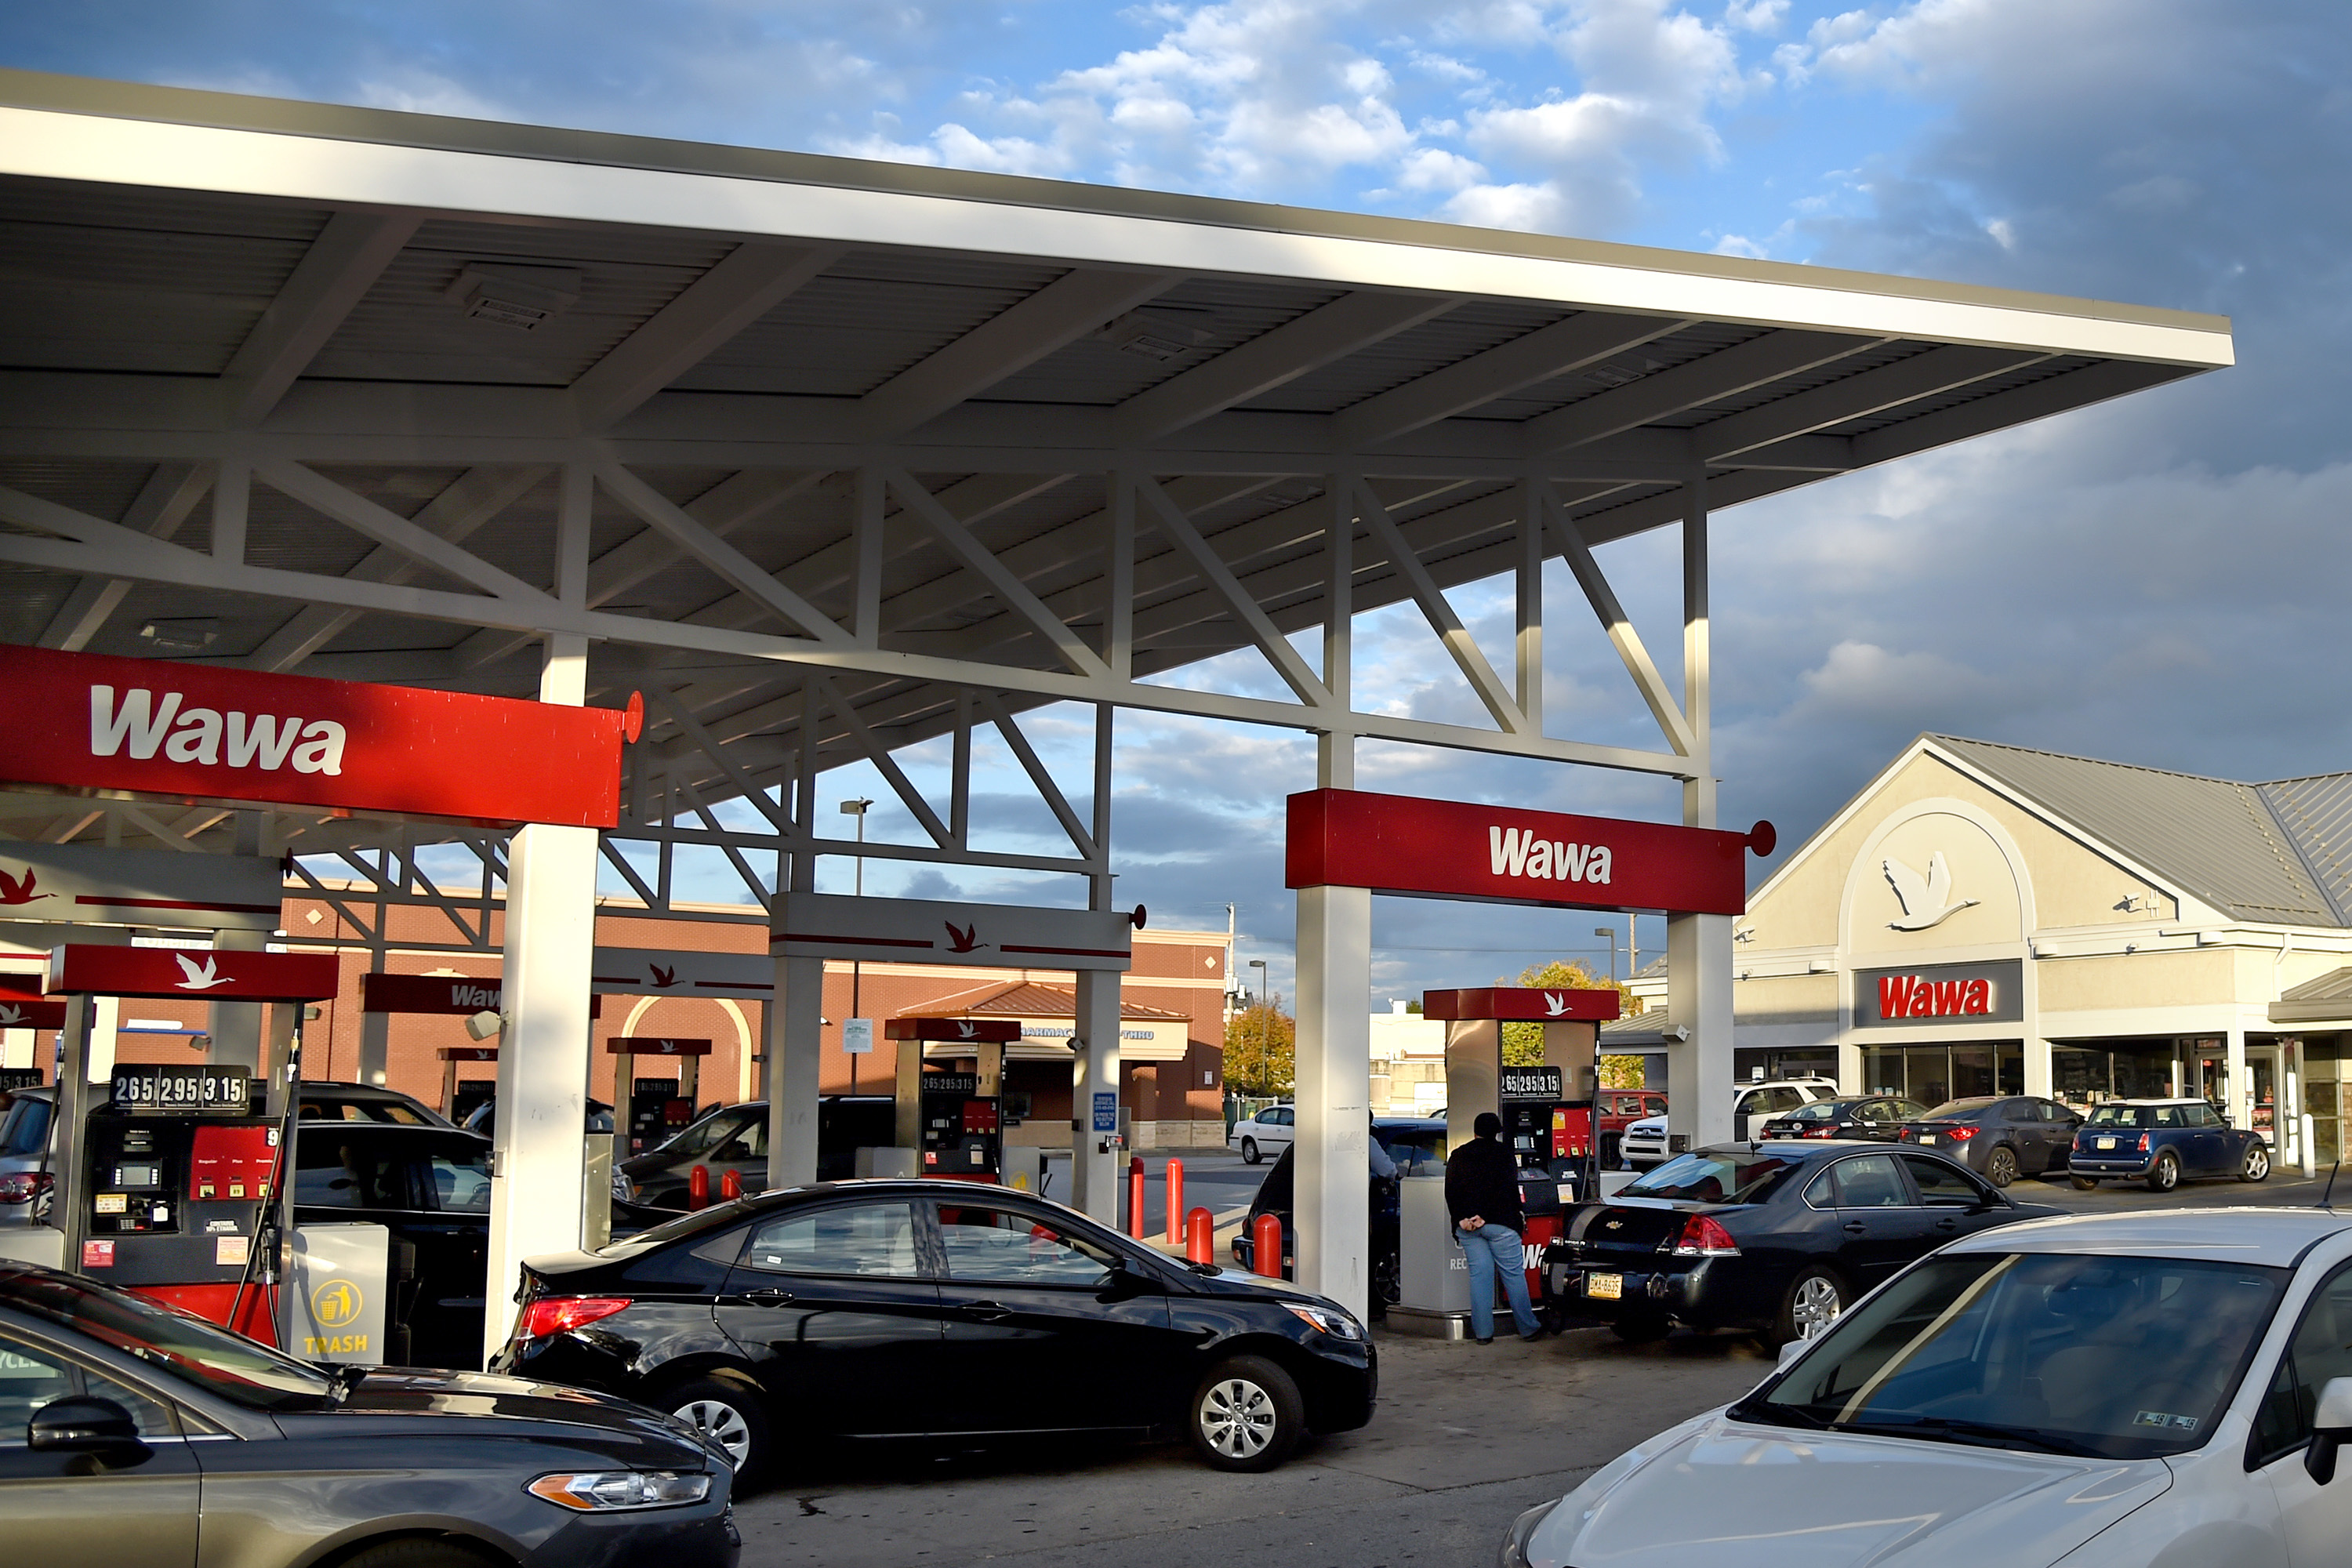 A super-sized Wawa convenience store and gas station combo at 2535 Aramingo Ave.